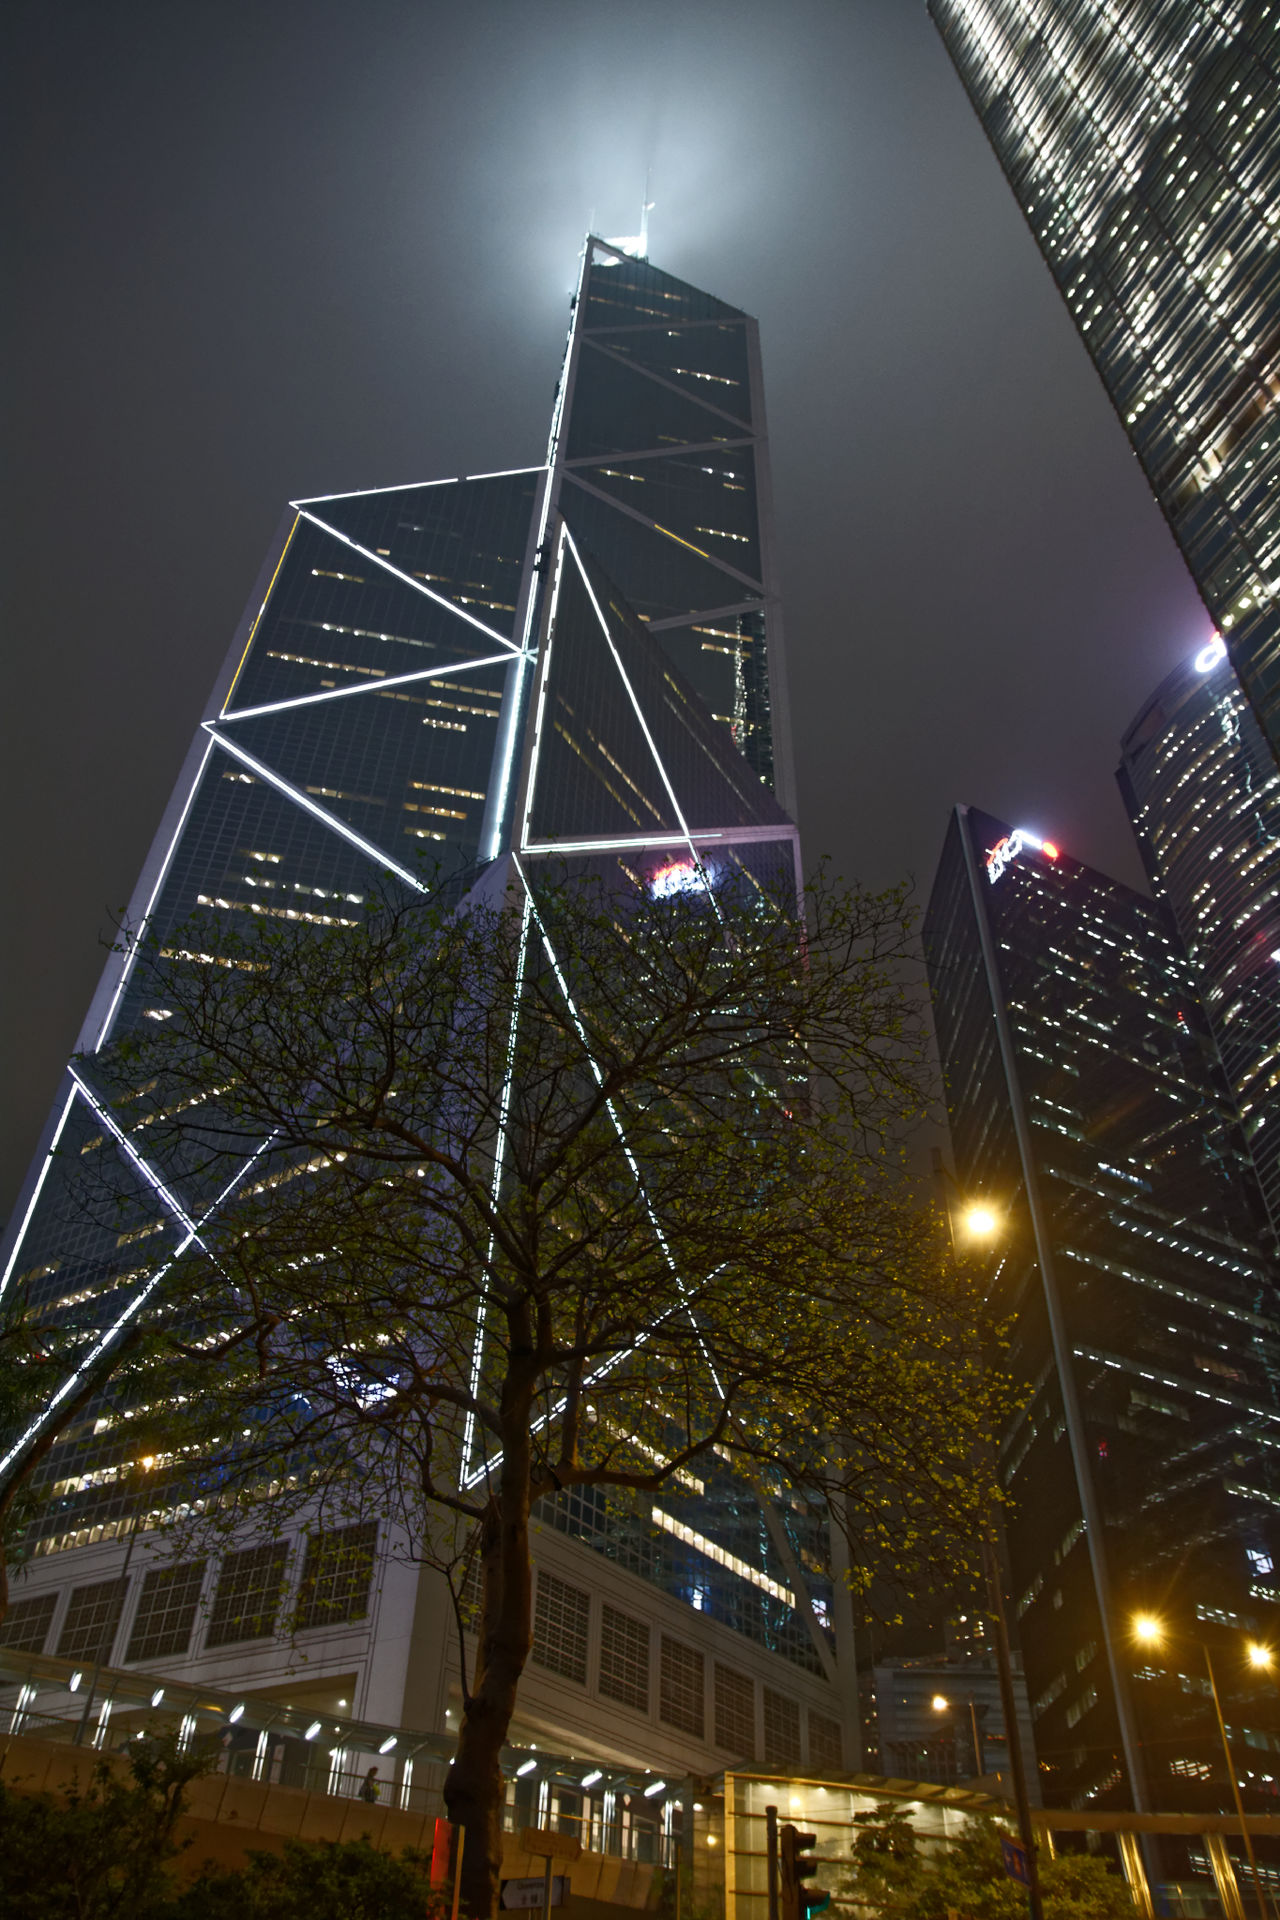 How small is the world under the skylines. #building #hongkong #lights #sky #Skyline #streetphotography #tree Architecture Built Structure Capital Cities  City City Life Low Angle View Modern Night Outdoors Tall - High Travel Destinations